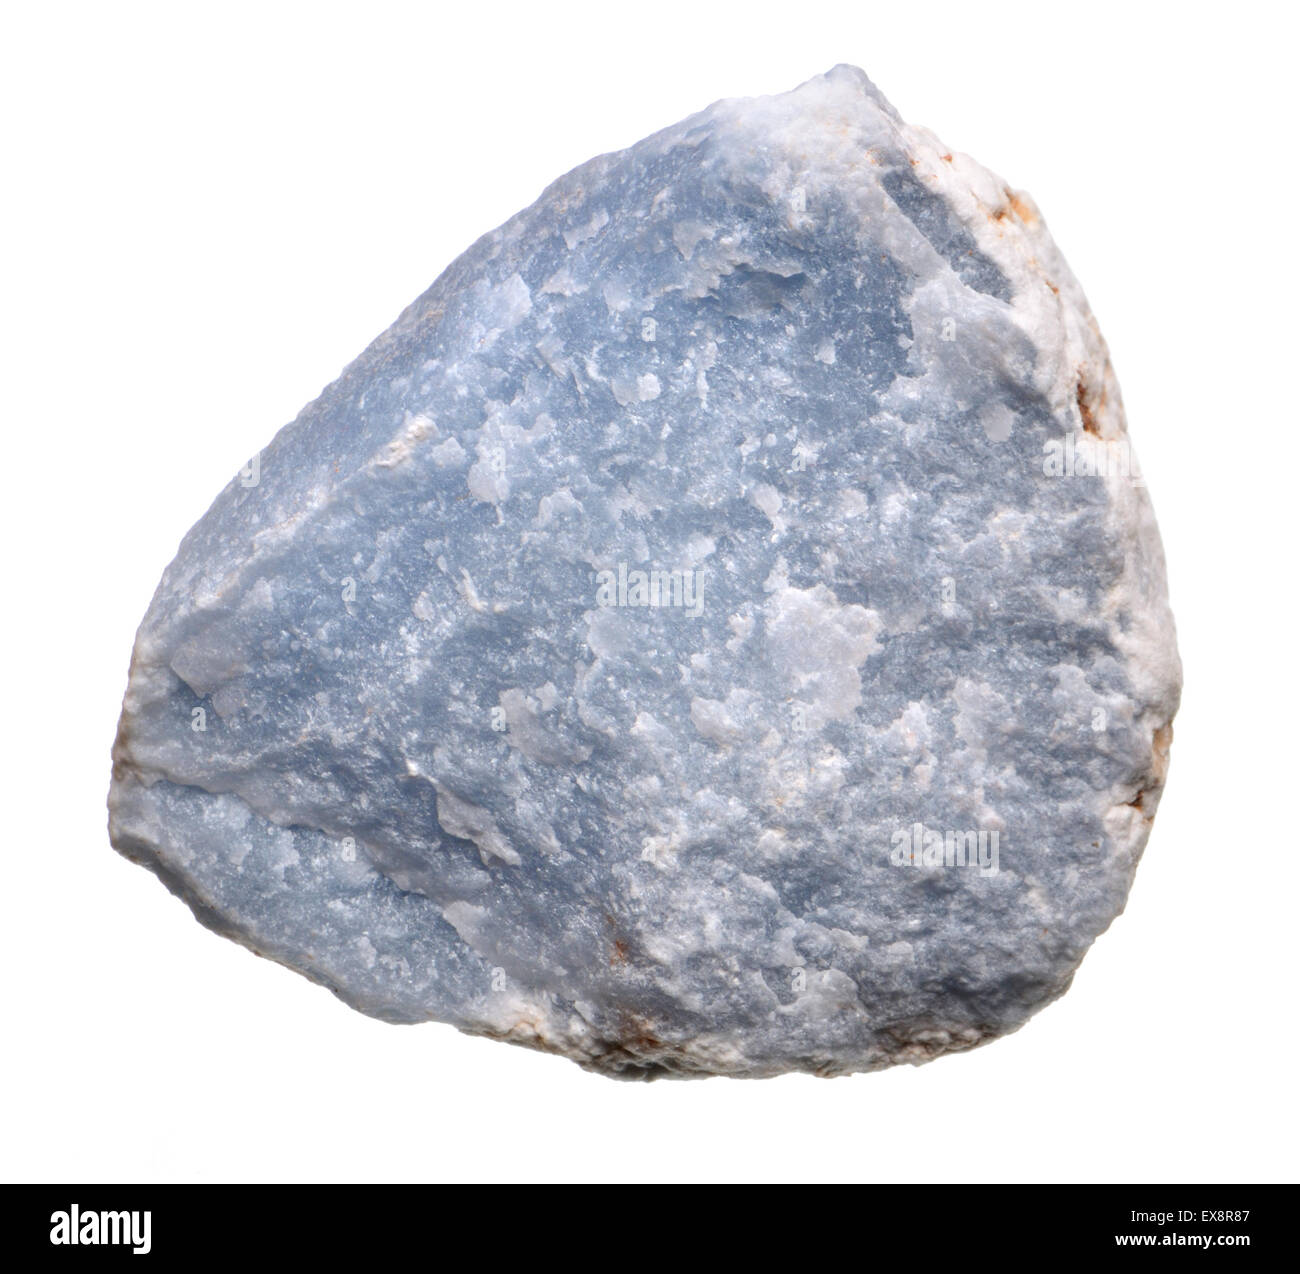 Angelite (blue form of Anhydrite - calcium sulphate) - Stock Image